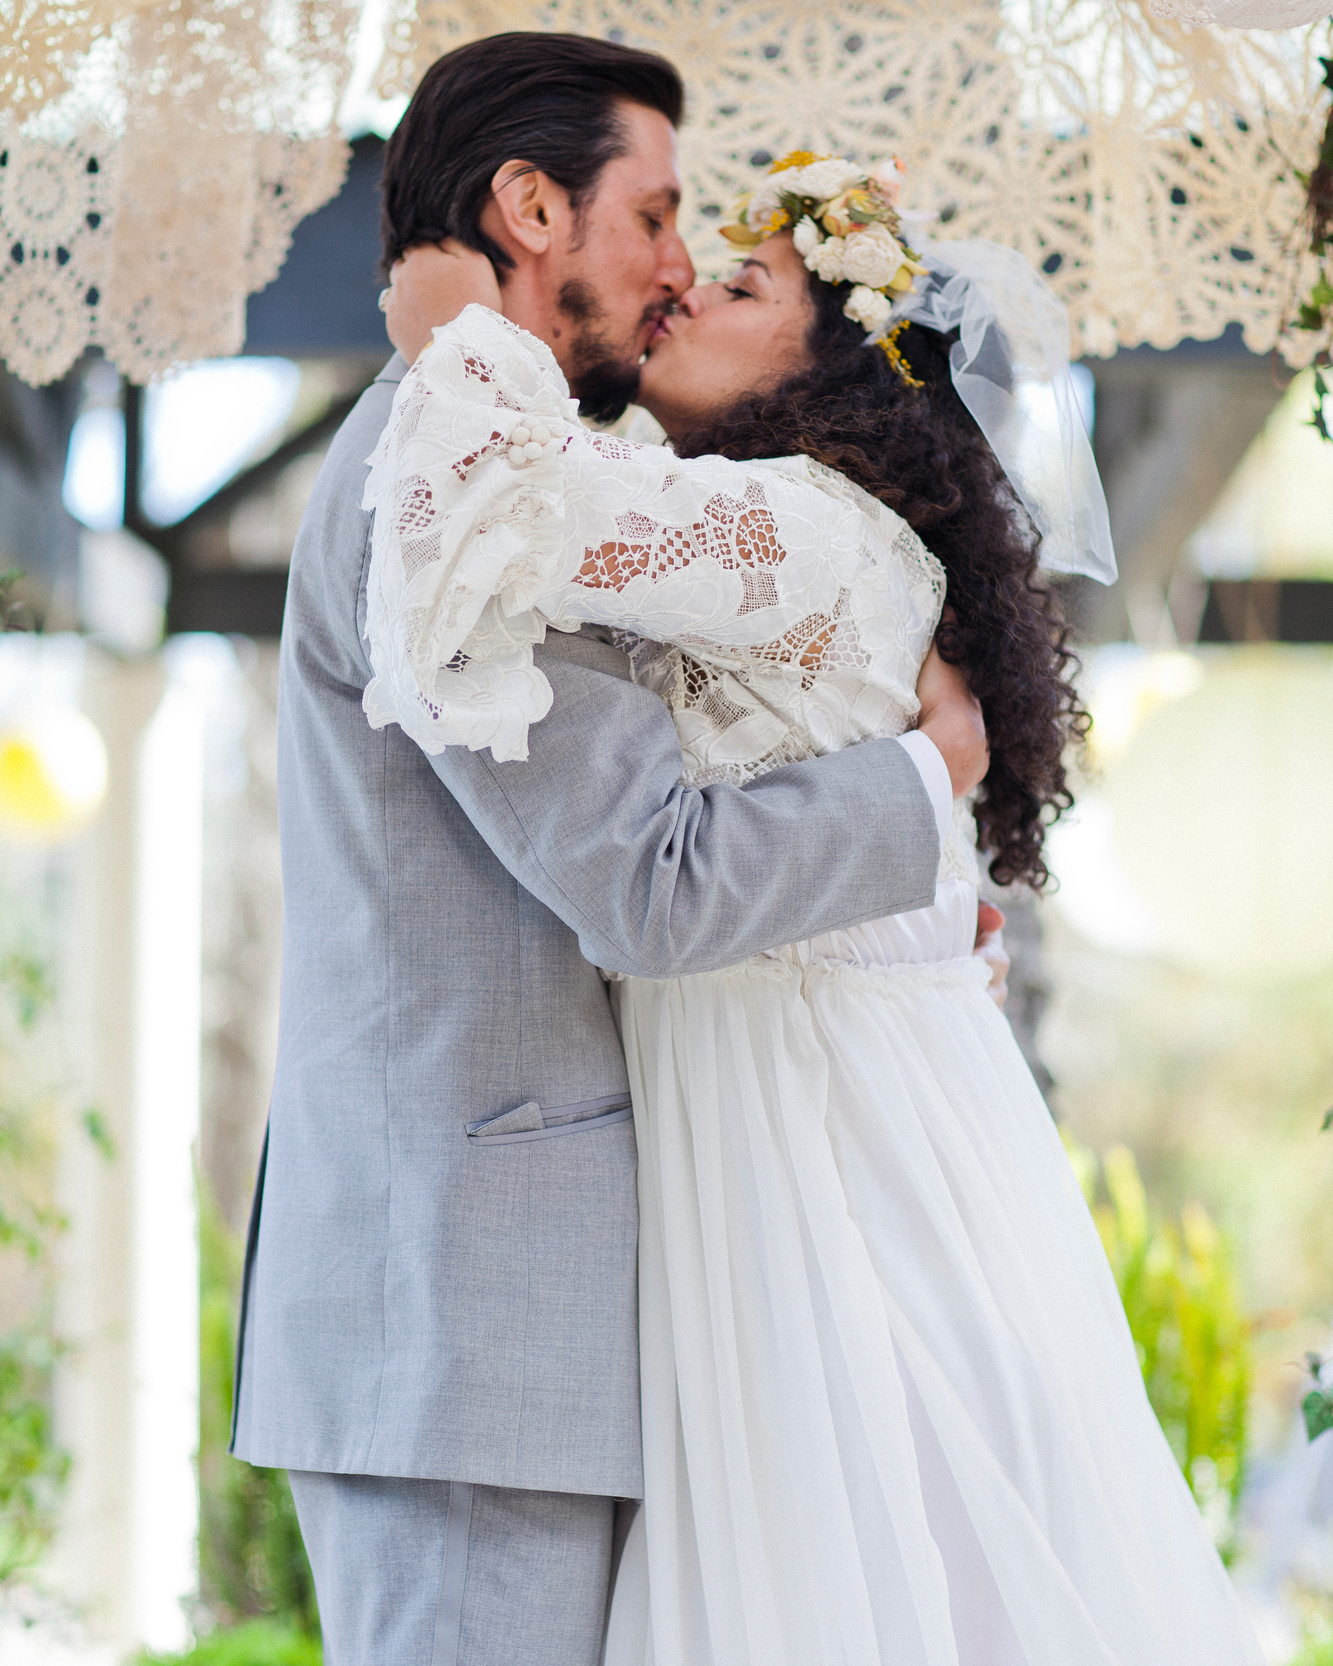 17 Jewish Wedding Traditions for Your Big Day